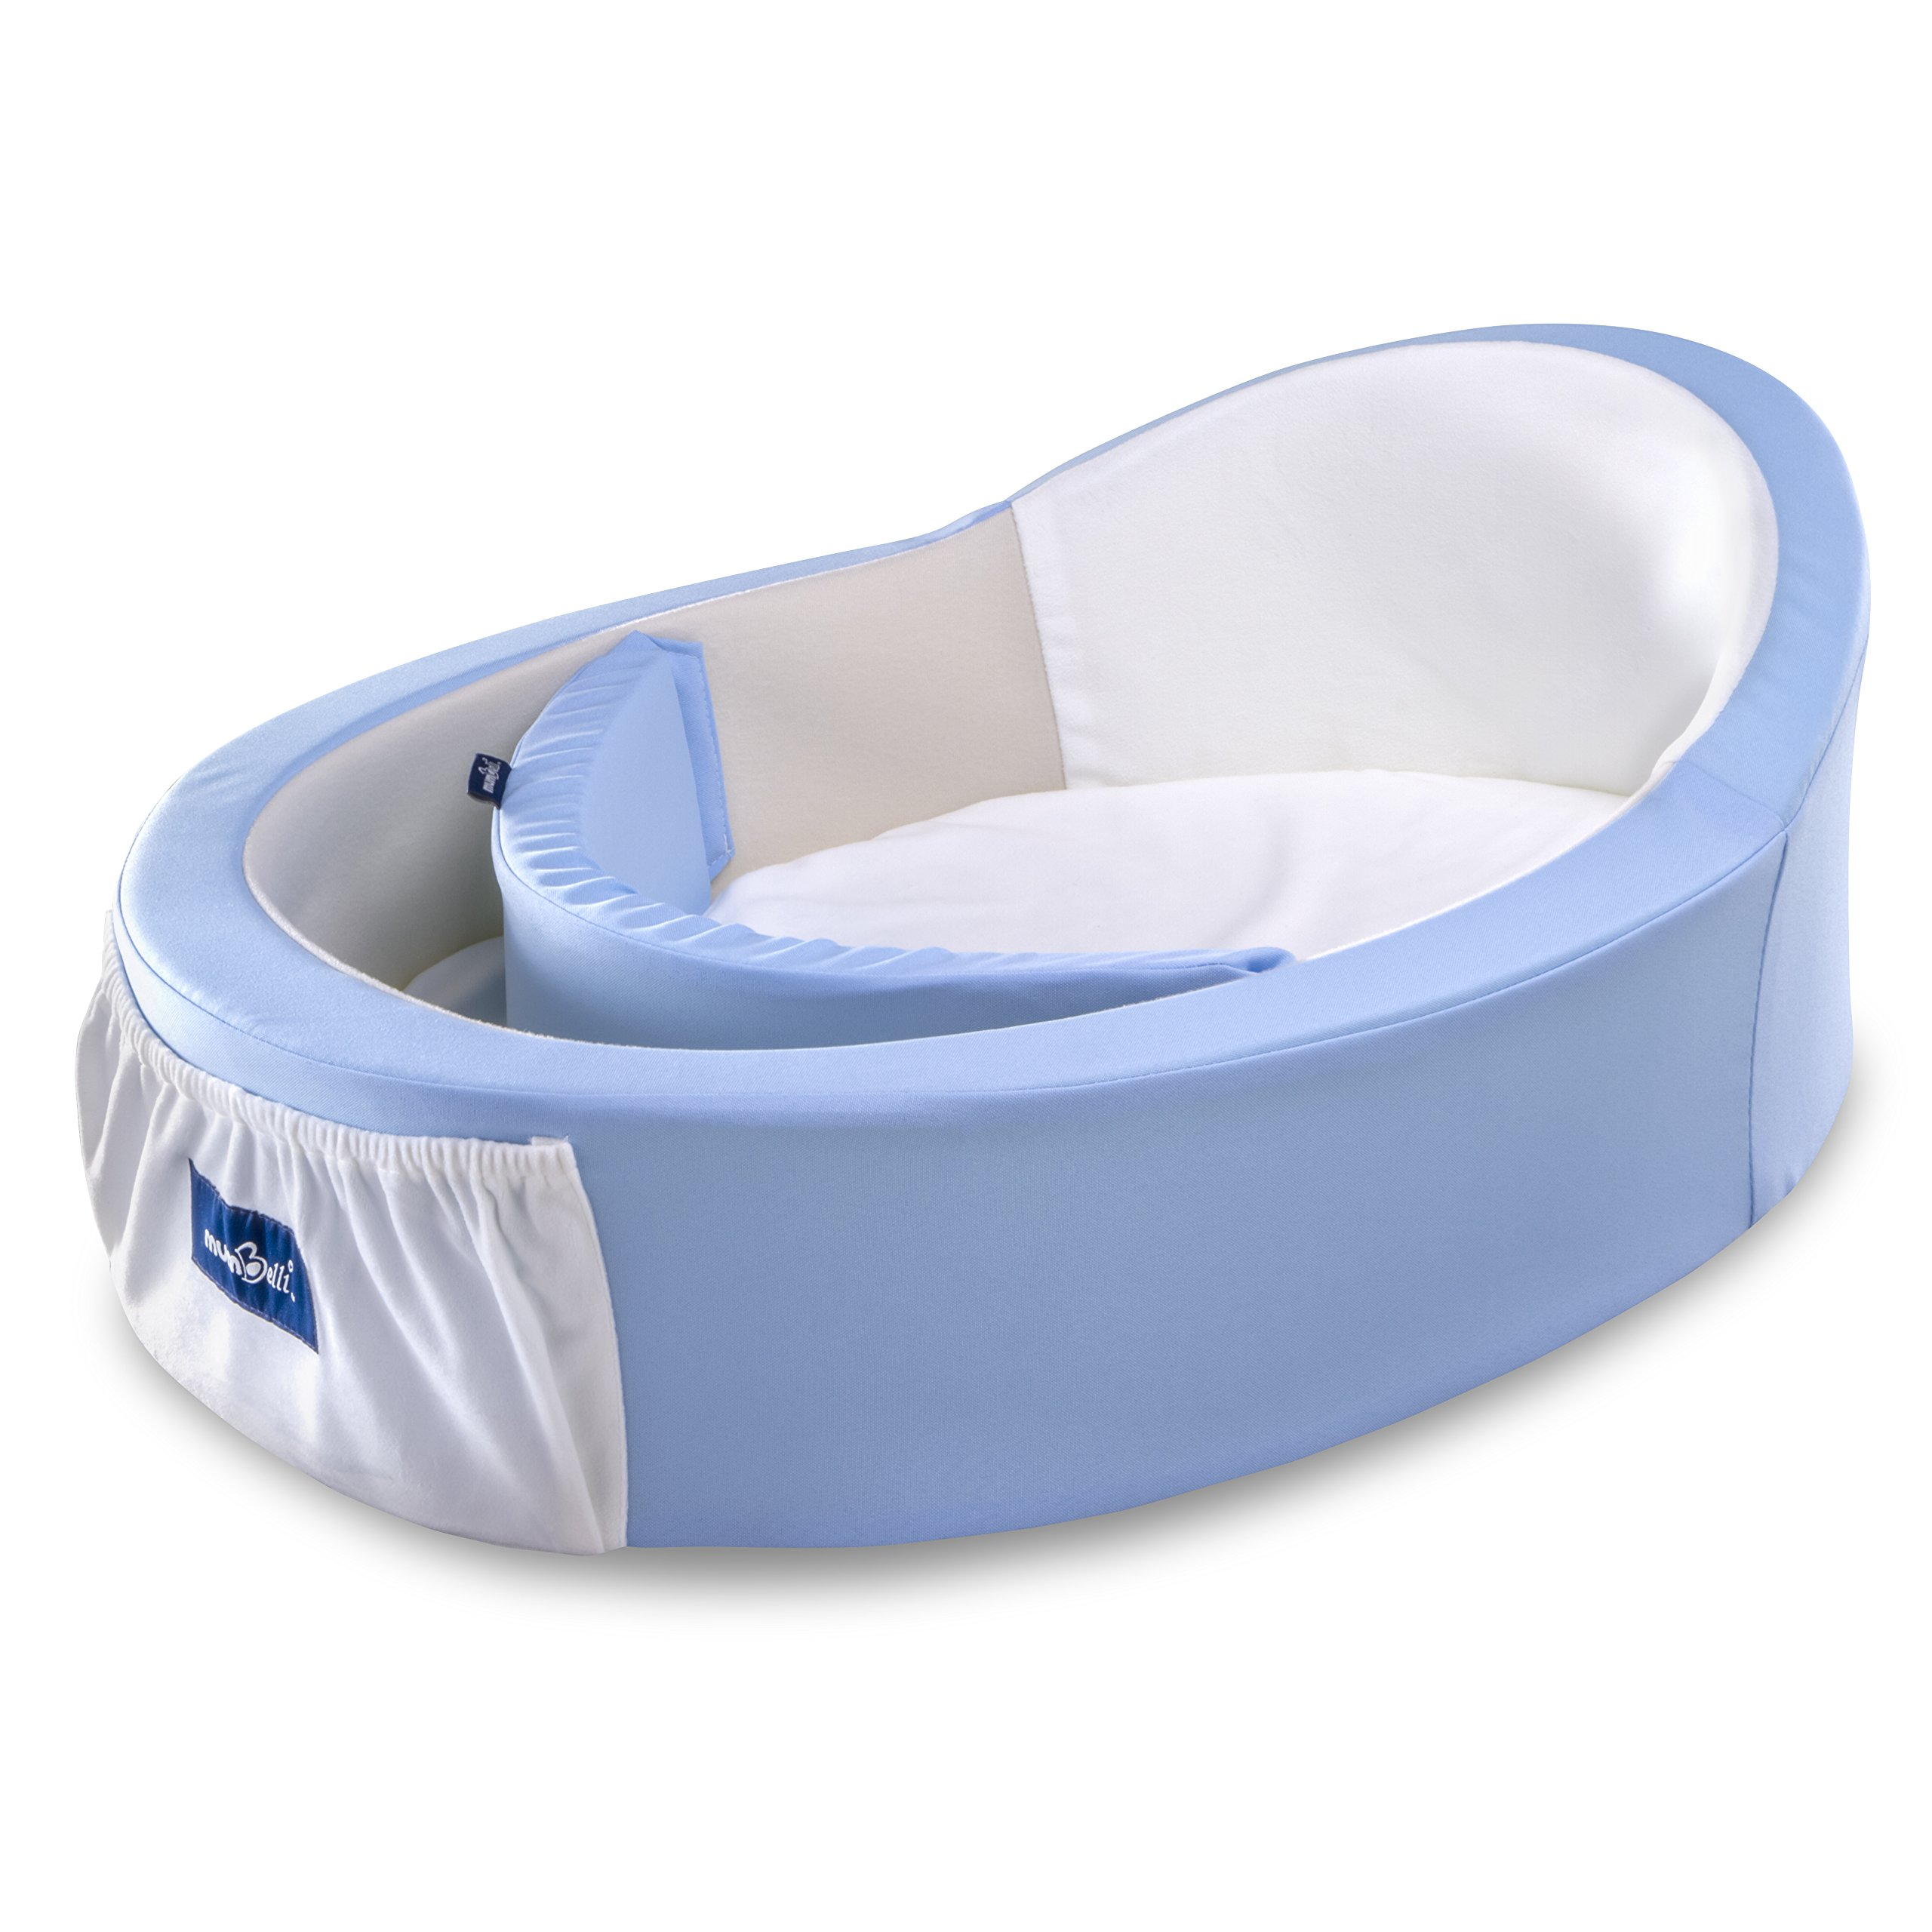 Mumbelli - The only Womb-Like and Adjustable Infant Bed. Patented Design, Safety Tested, Reflux Wedge Included. Great for Travel, co Sleeping and Crib Insert. by Mumbelli (Image #1)